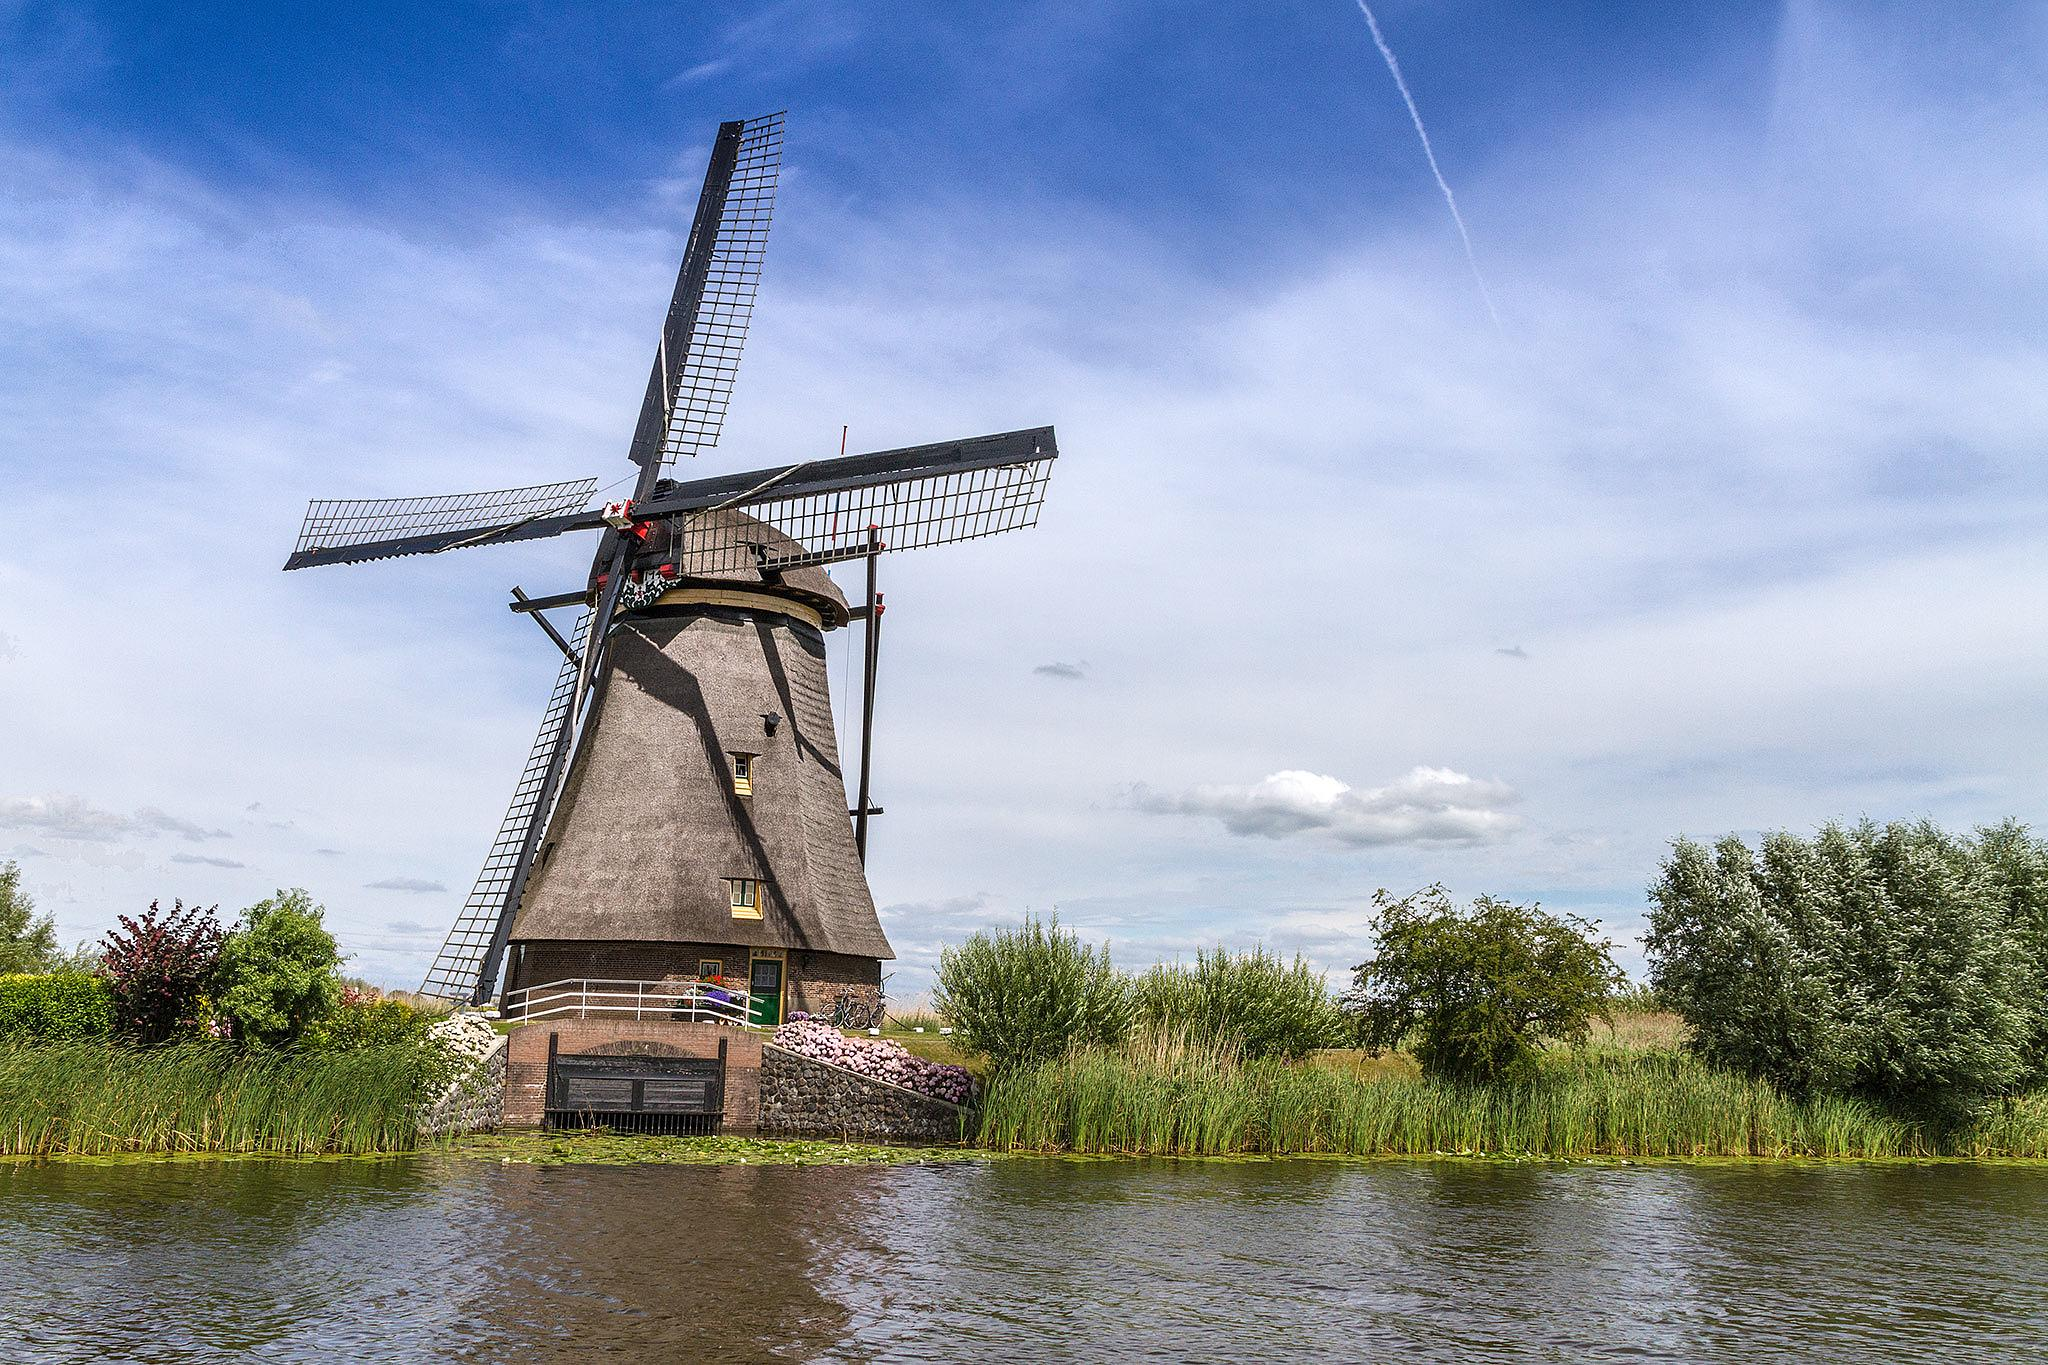 Windmill Overwaard 3 Kinderdijk by Rémon Lourier